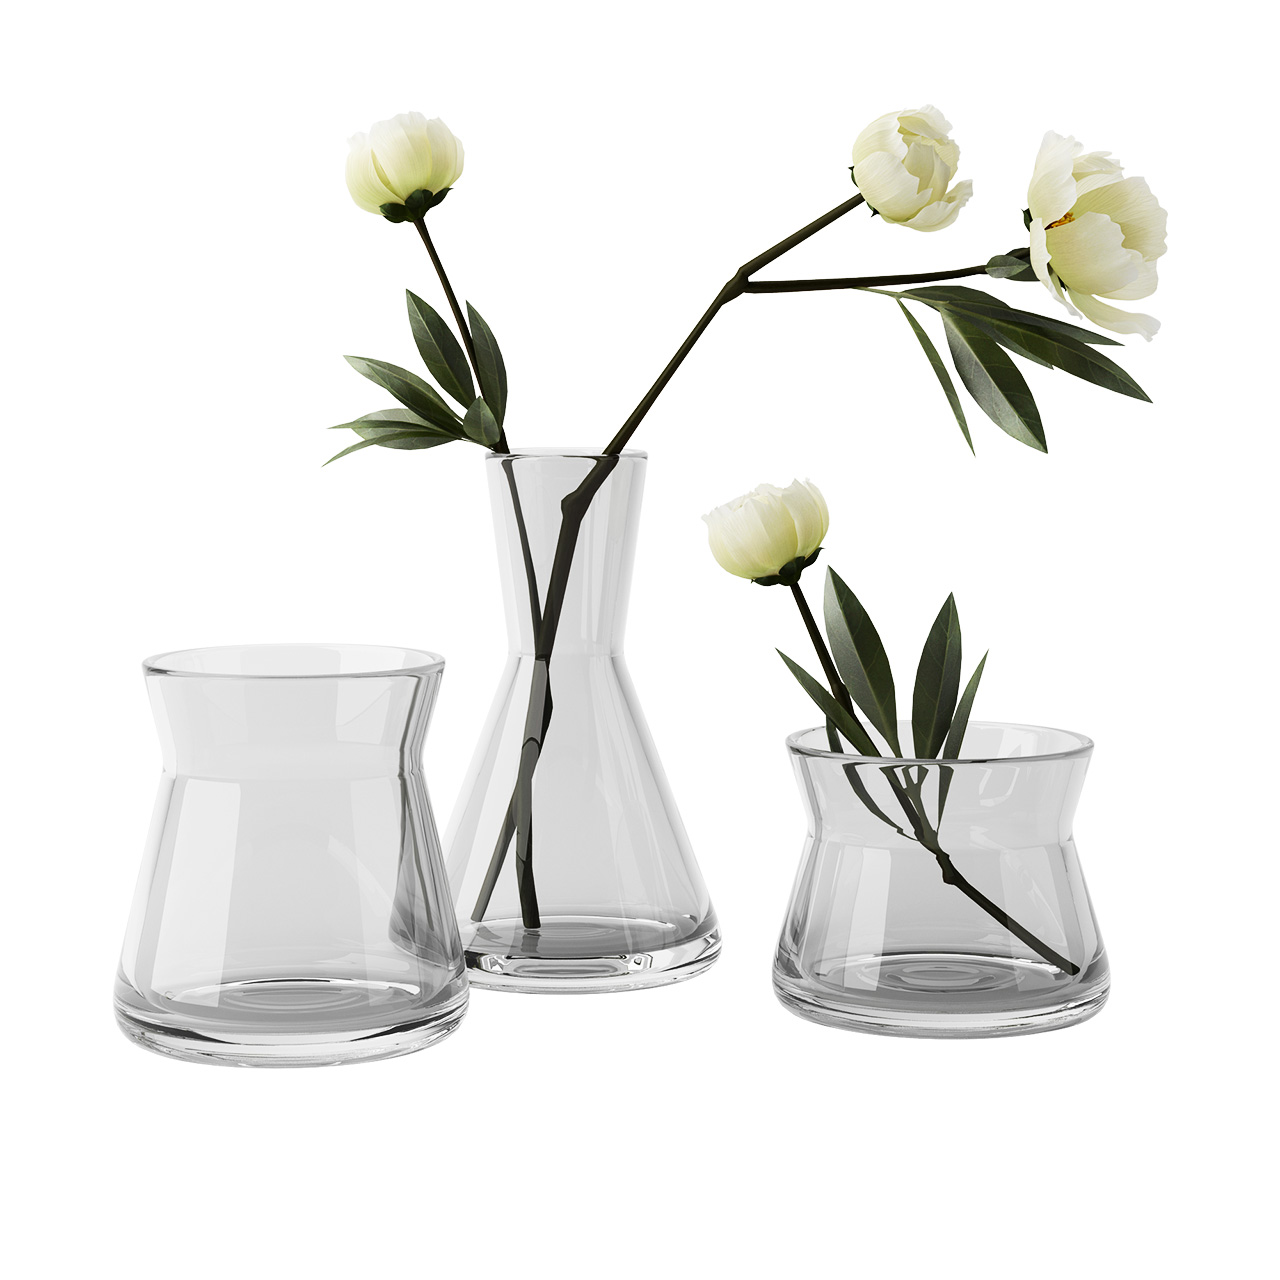 Trio Vases, Set of 3 by Design House Stockholm